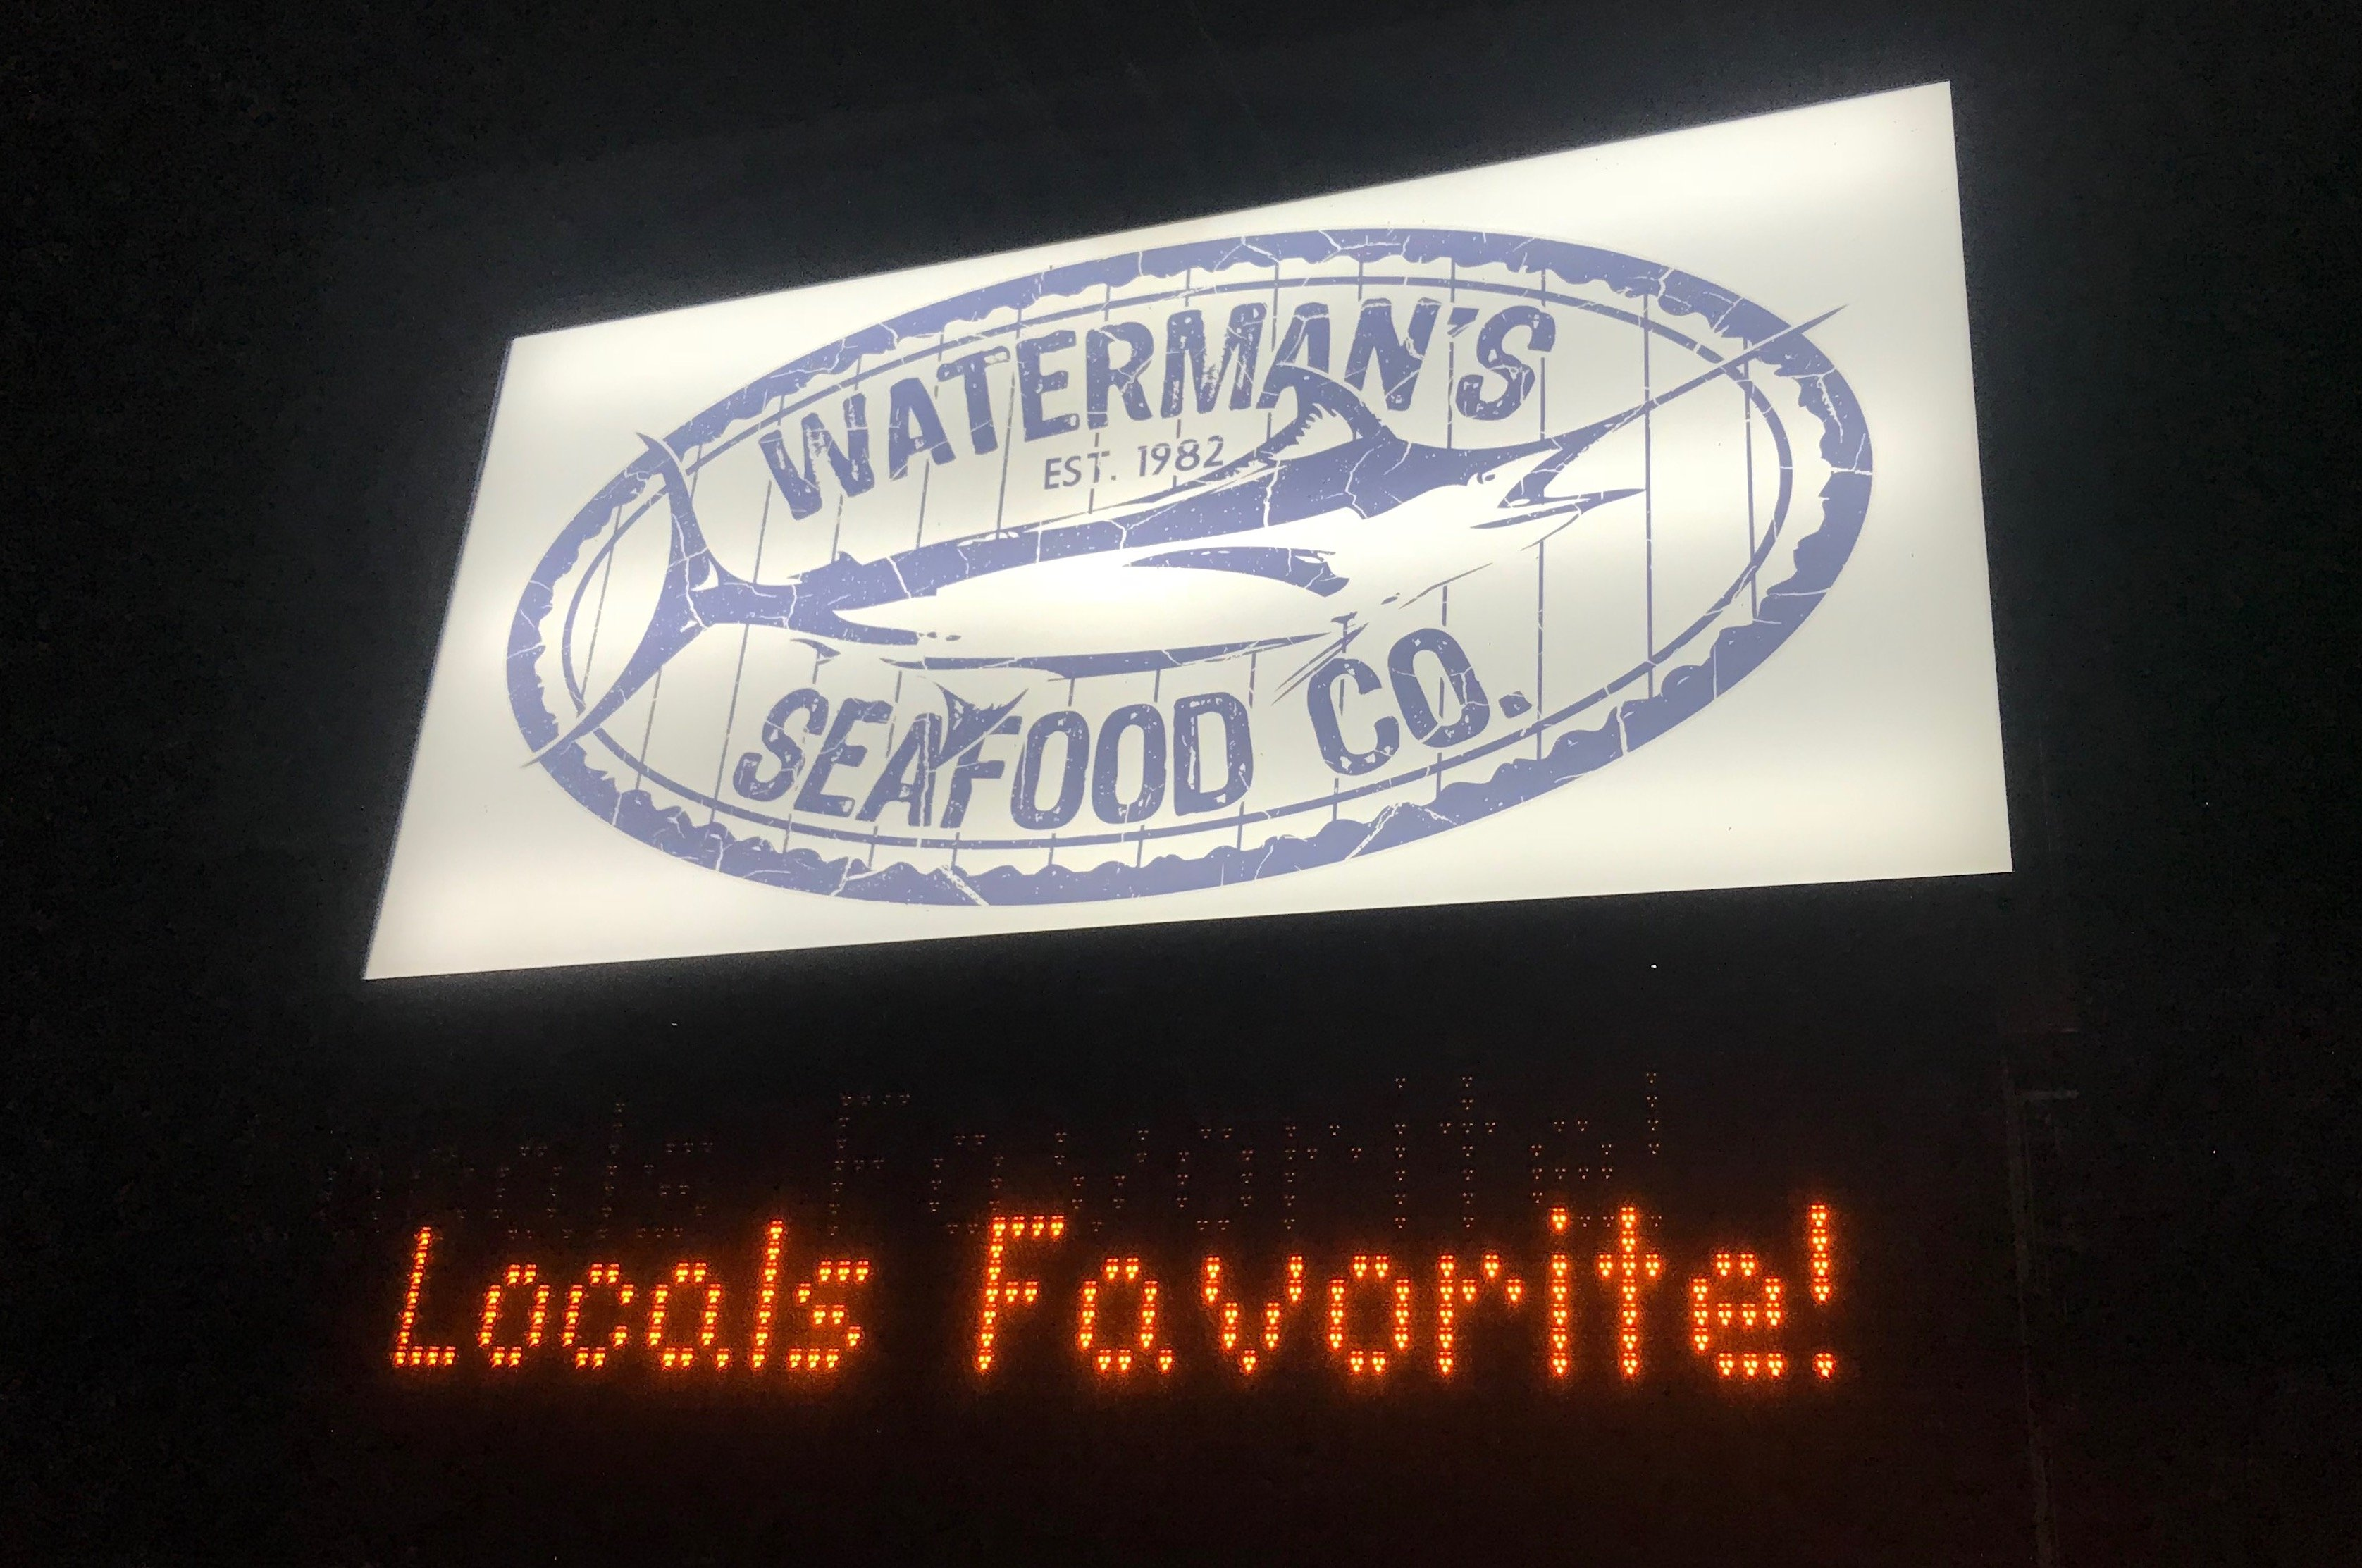 Tide tables fishing reports news ocean city md tournaments watermans seafood company nvjuhfo Gallery